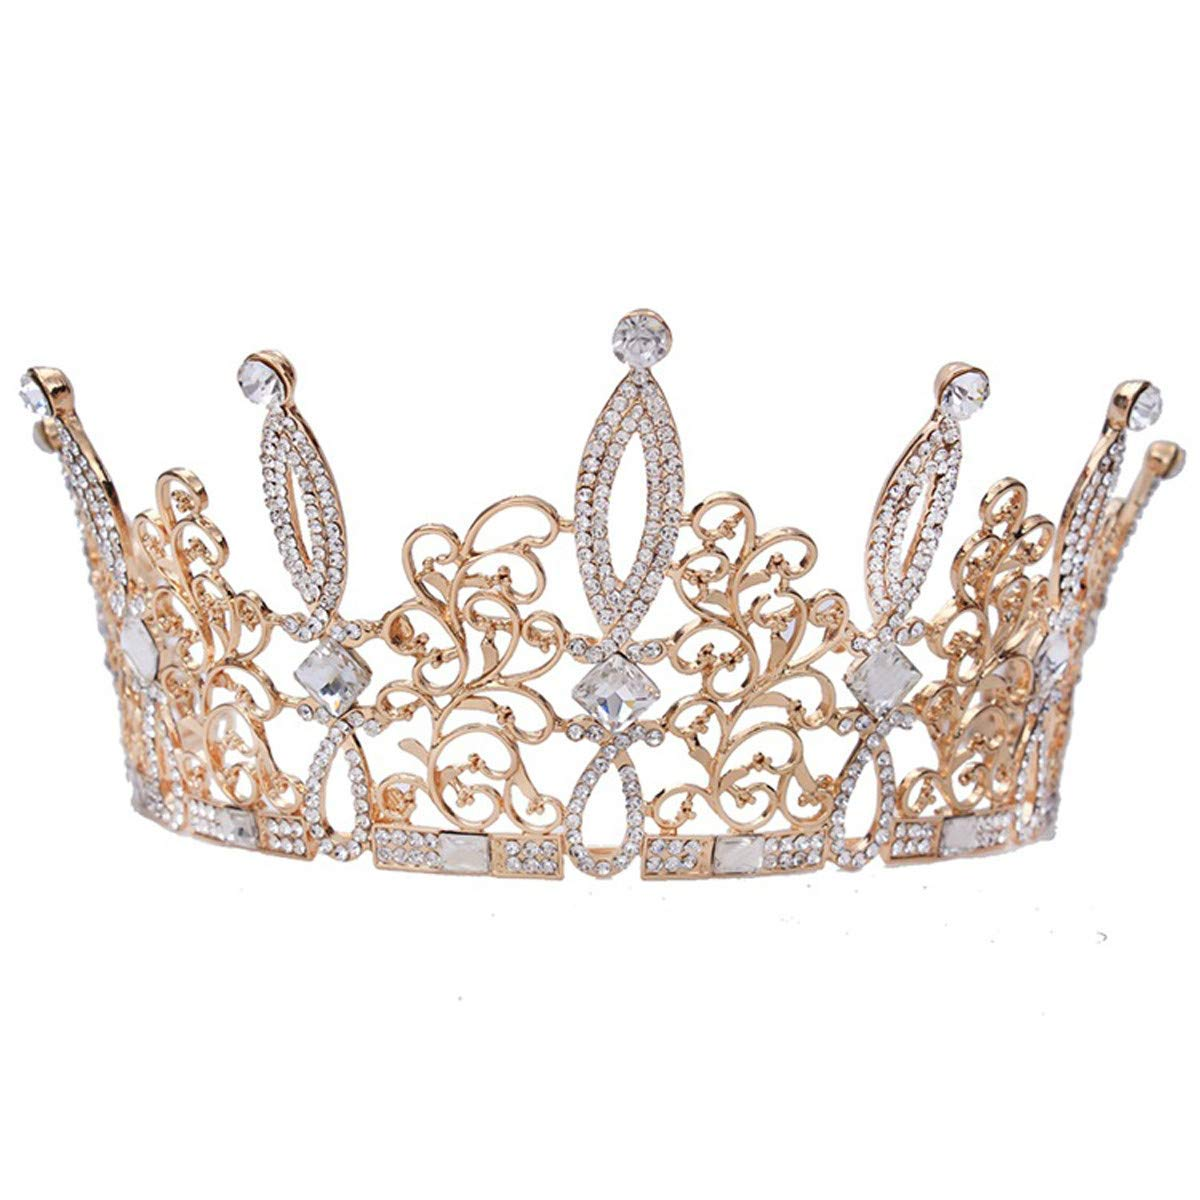 Crystal Crown, Bridal Wedding/Prom Hair Pins/Headdress Accessories/Party/Girls Crown Ornaments Hair Accessories Water Drill Wedding Dress Accessories